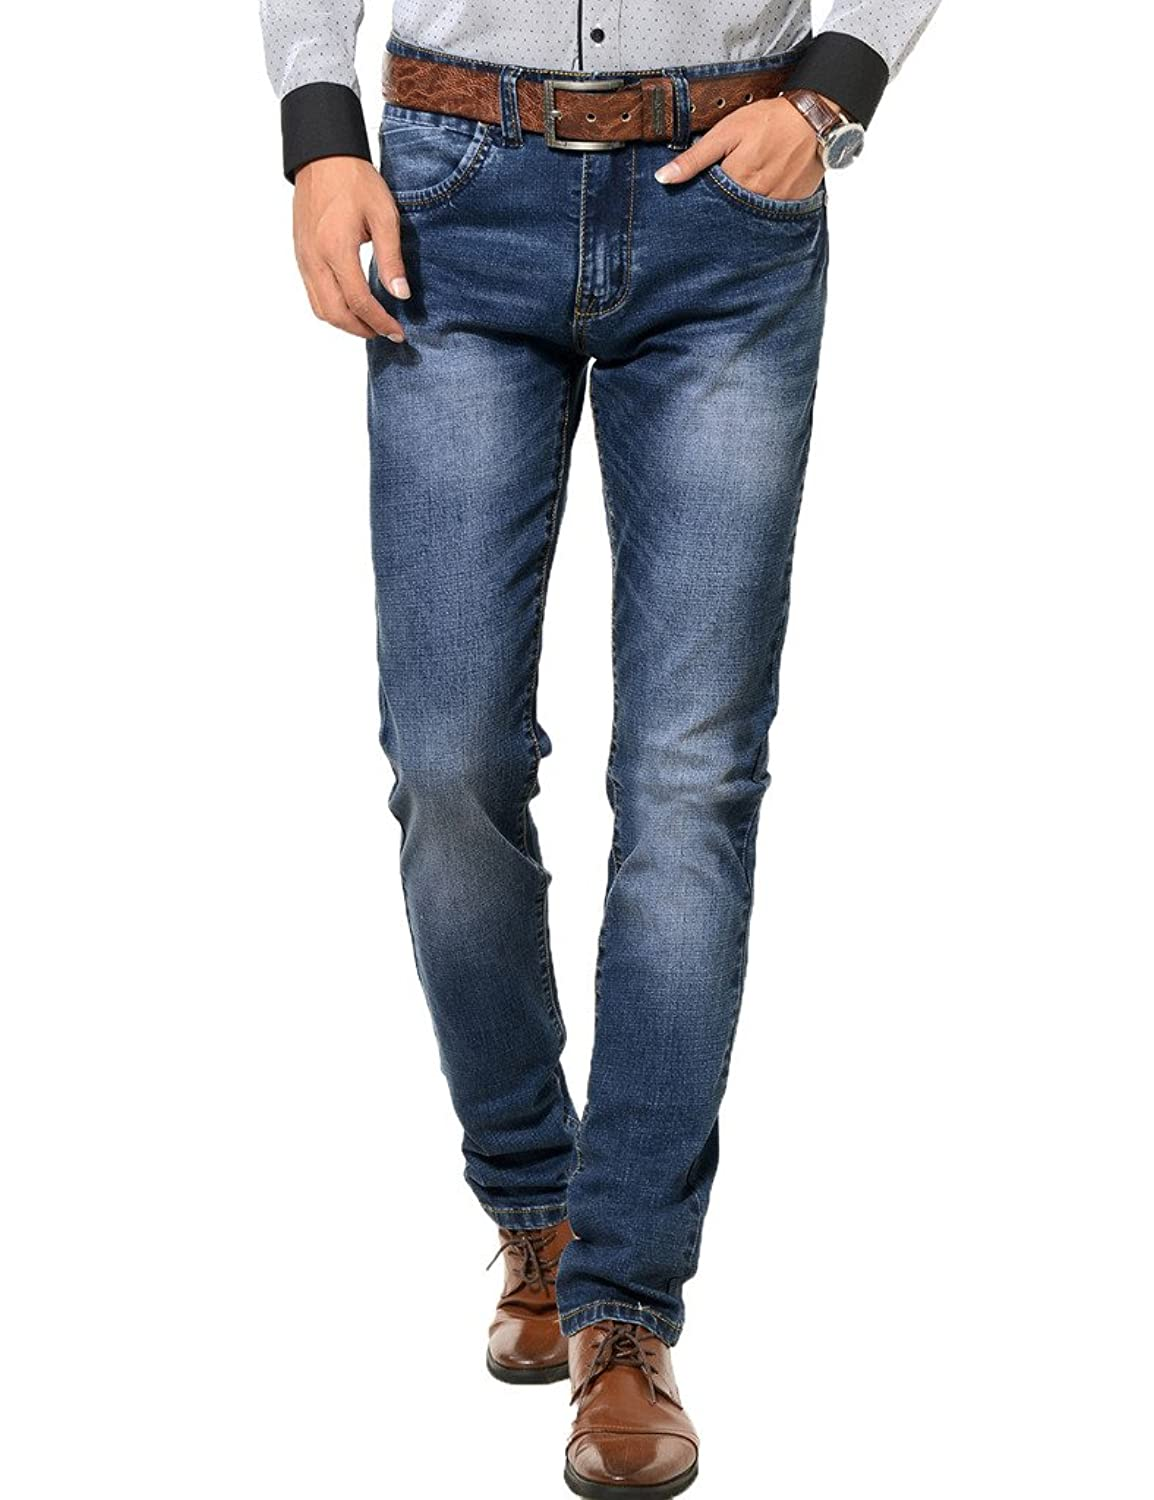 PHOENISING Men's Plain Pattern Washed Fabric Jeans Stretchy Denim Pants